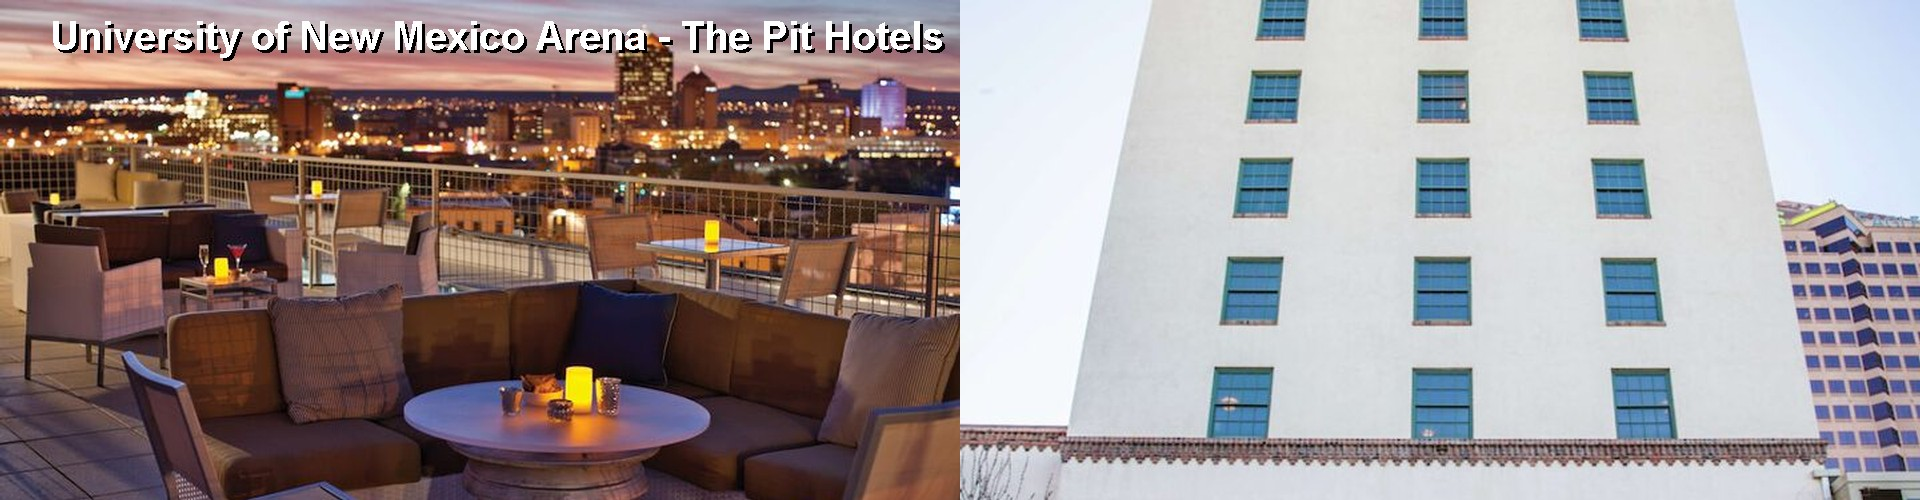 5 Best Hotels near University of New Mexico Arena - The Pit